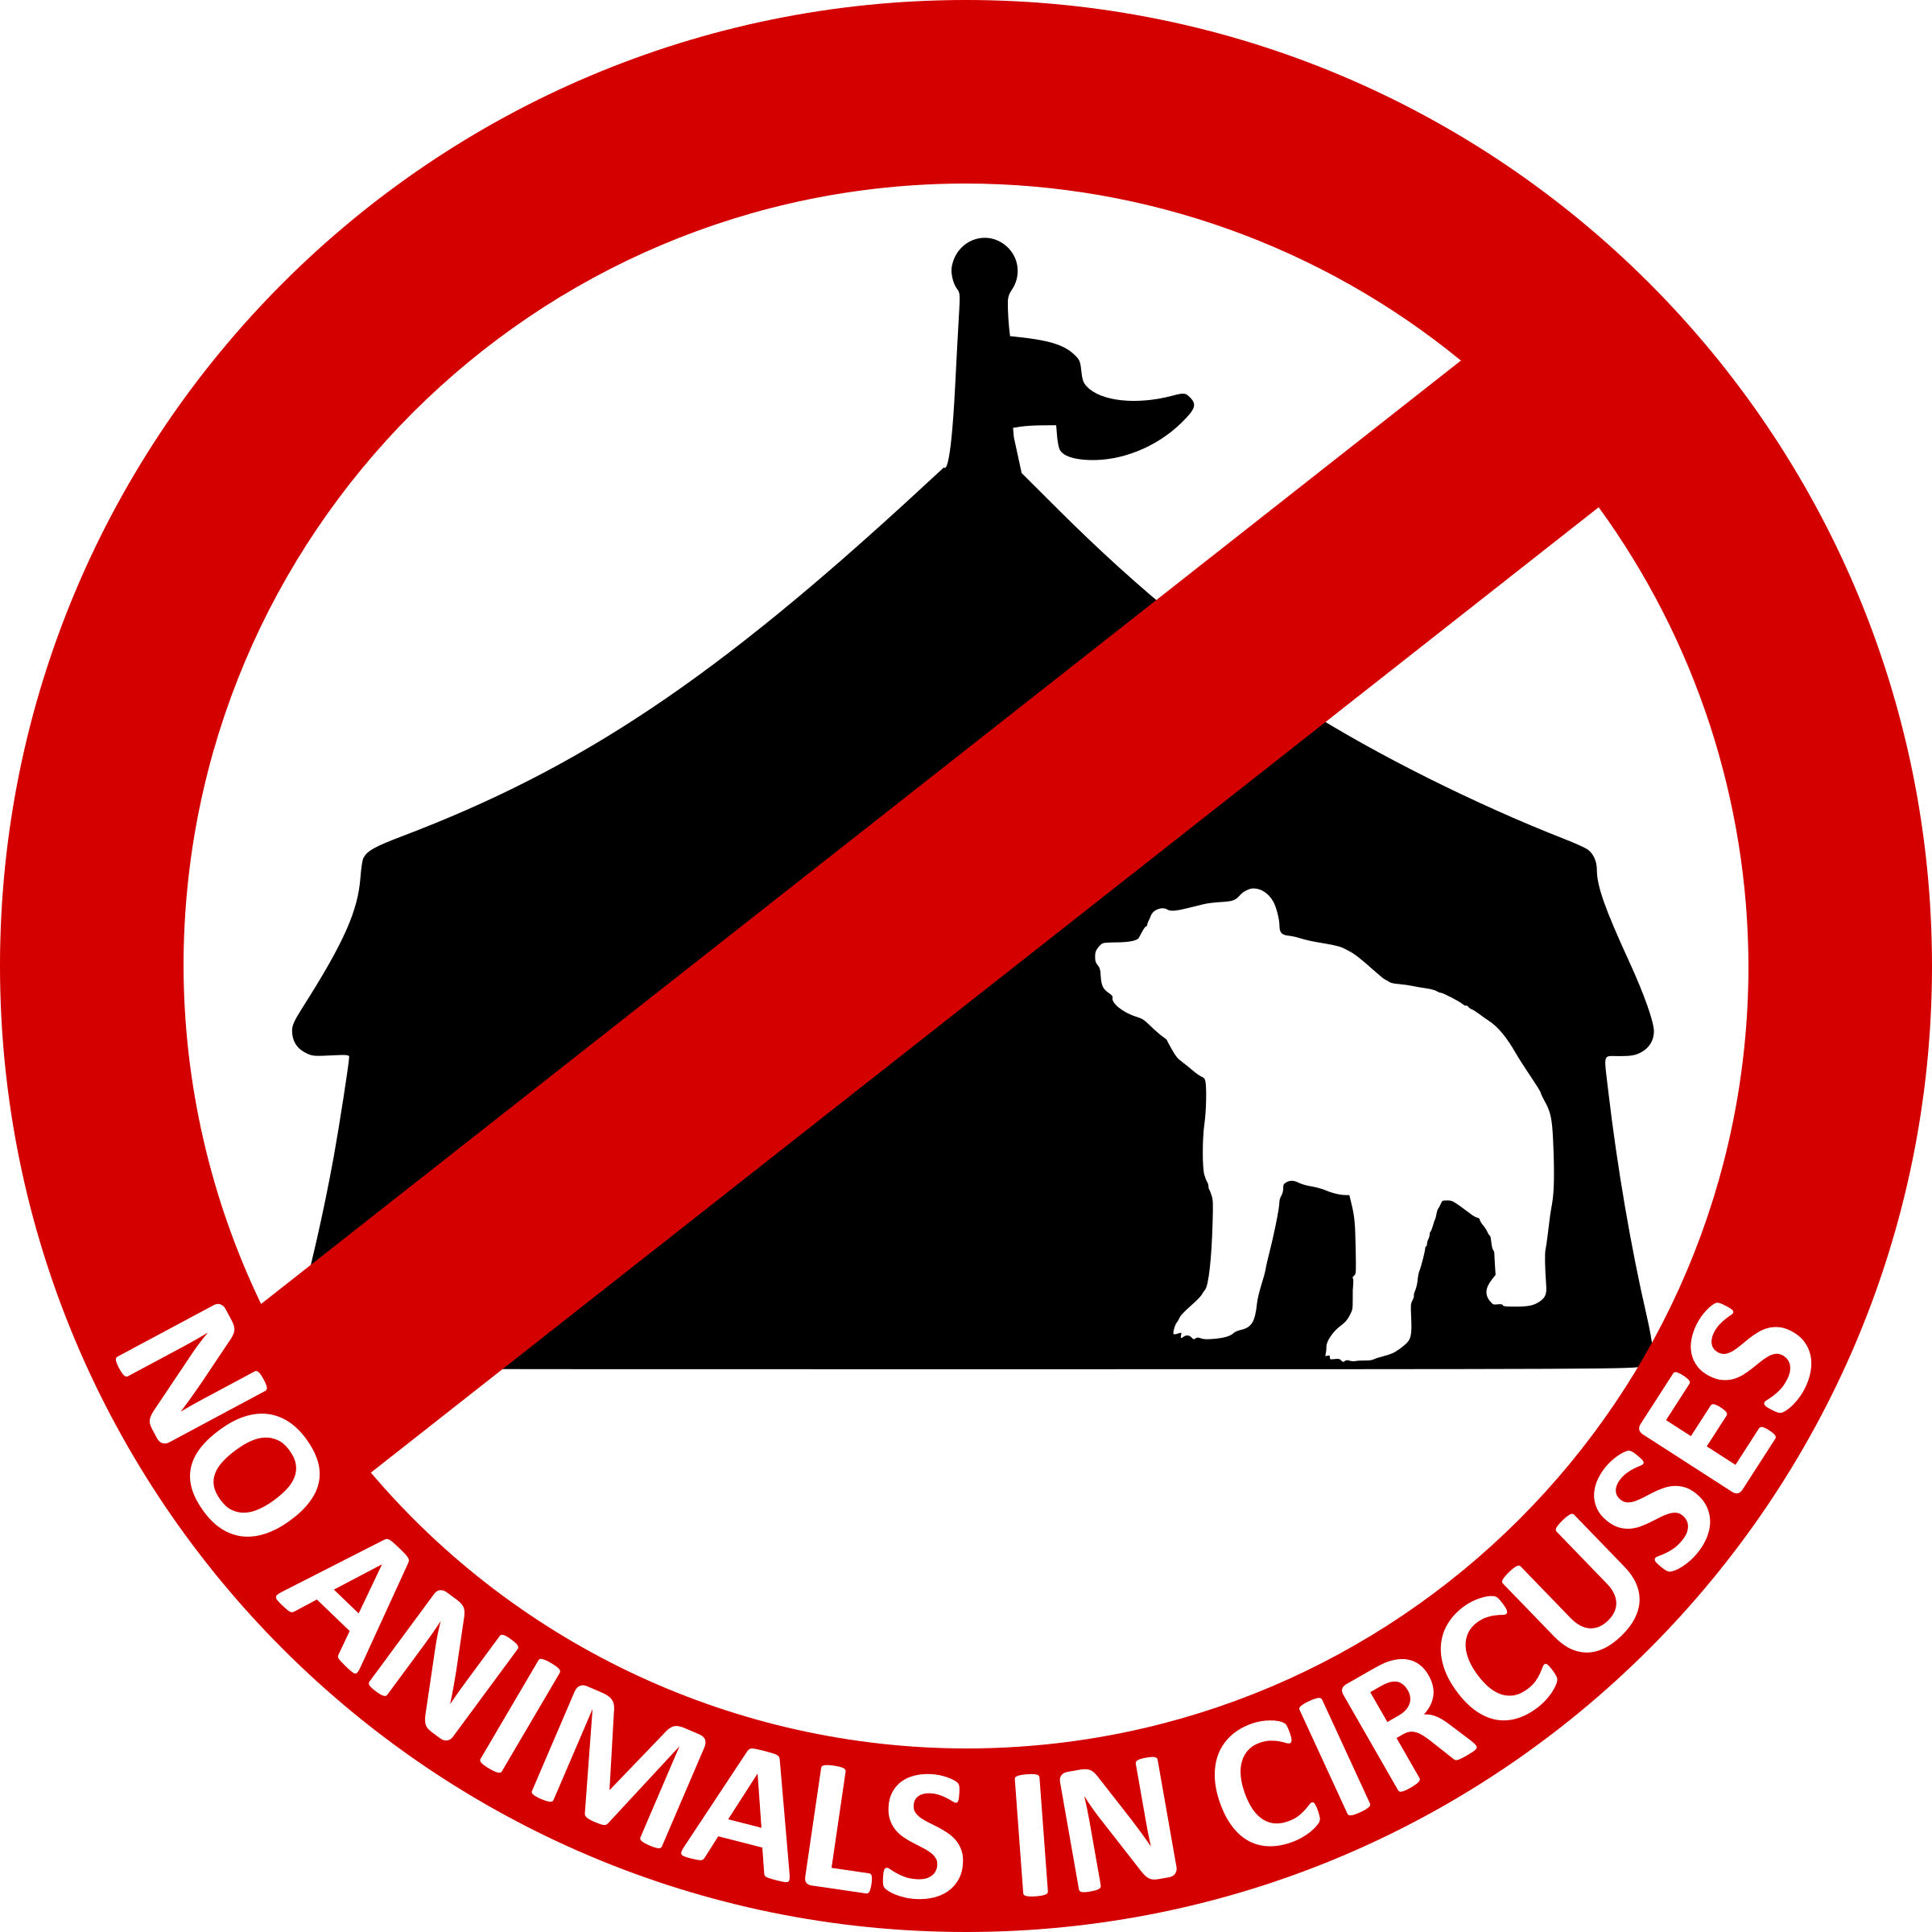 No Animals in circuses 3 by Chrisdesign